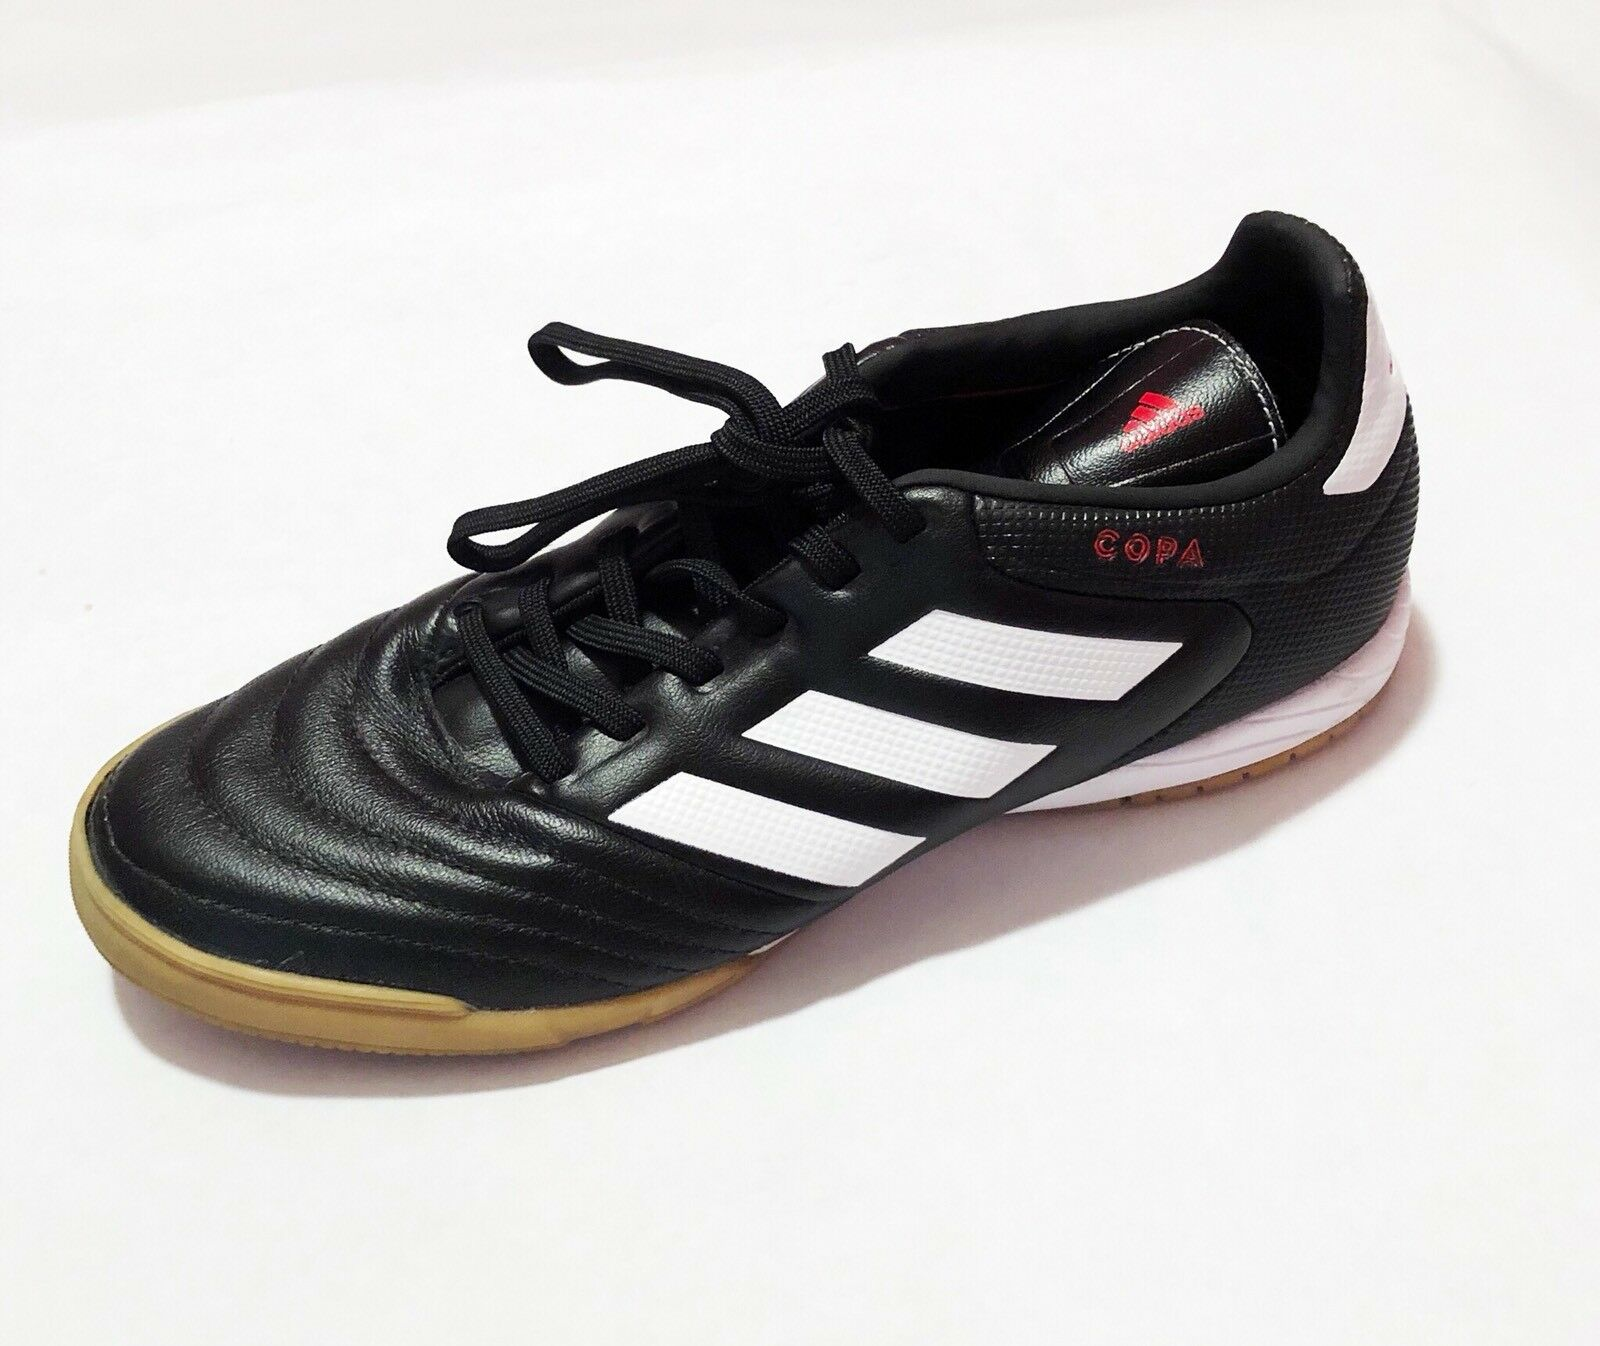 Adidas Copa Mens White Black Indoor Soccer Shoes White Mens Stripes Size US 7 eba16d